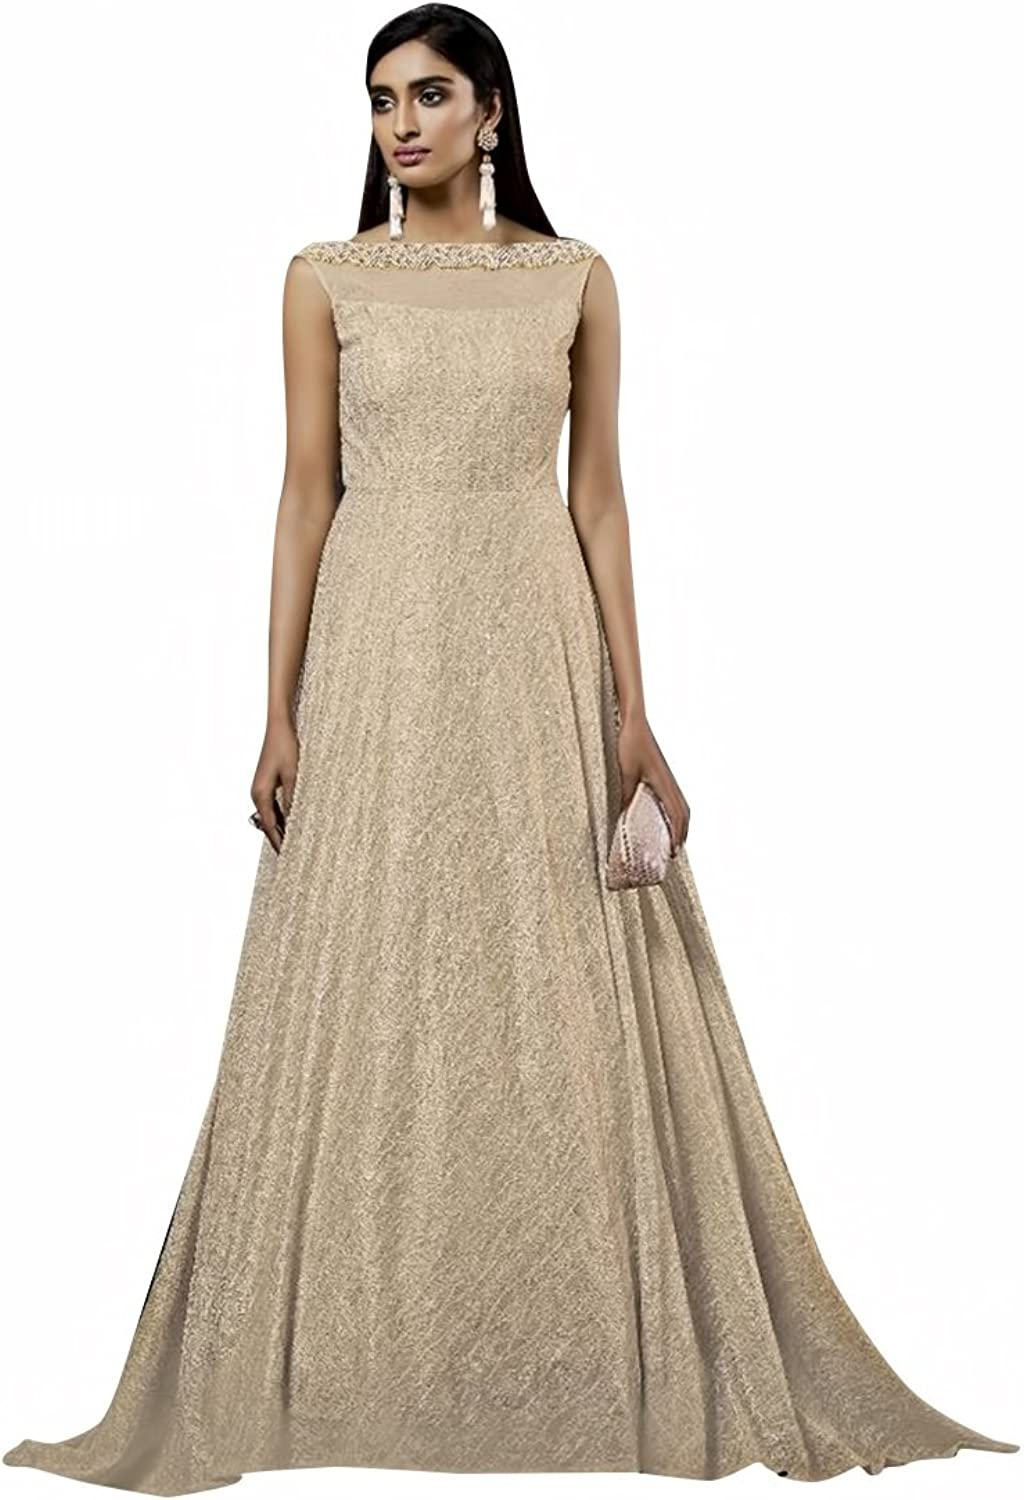 Bollywood Festival Offer New Launch Collection Gown Anarkali Salwar Bridal Wedding Ceremony Punjabi Women dress Gown